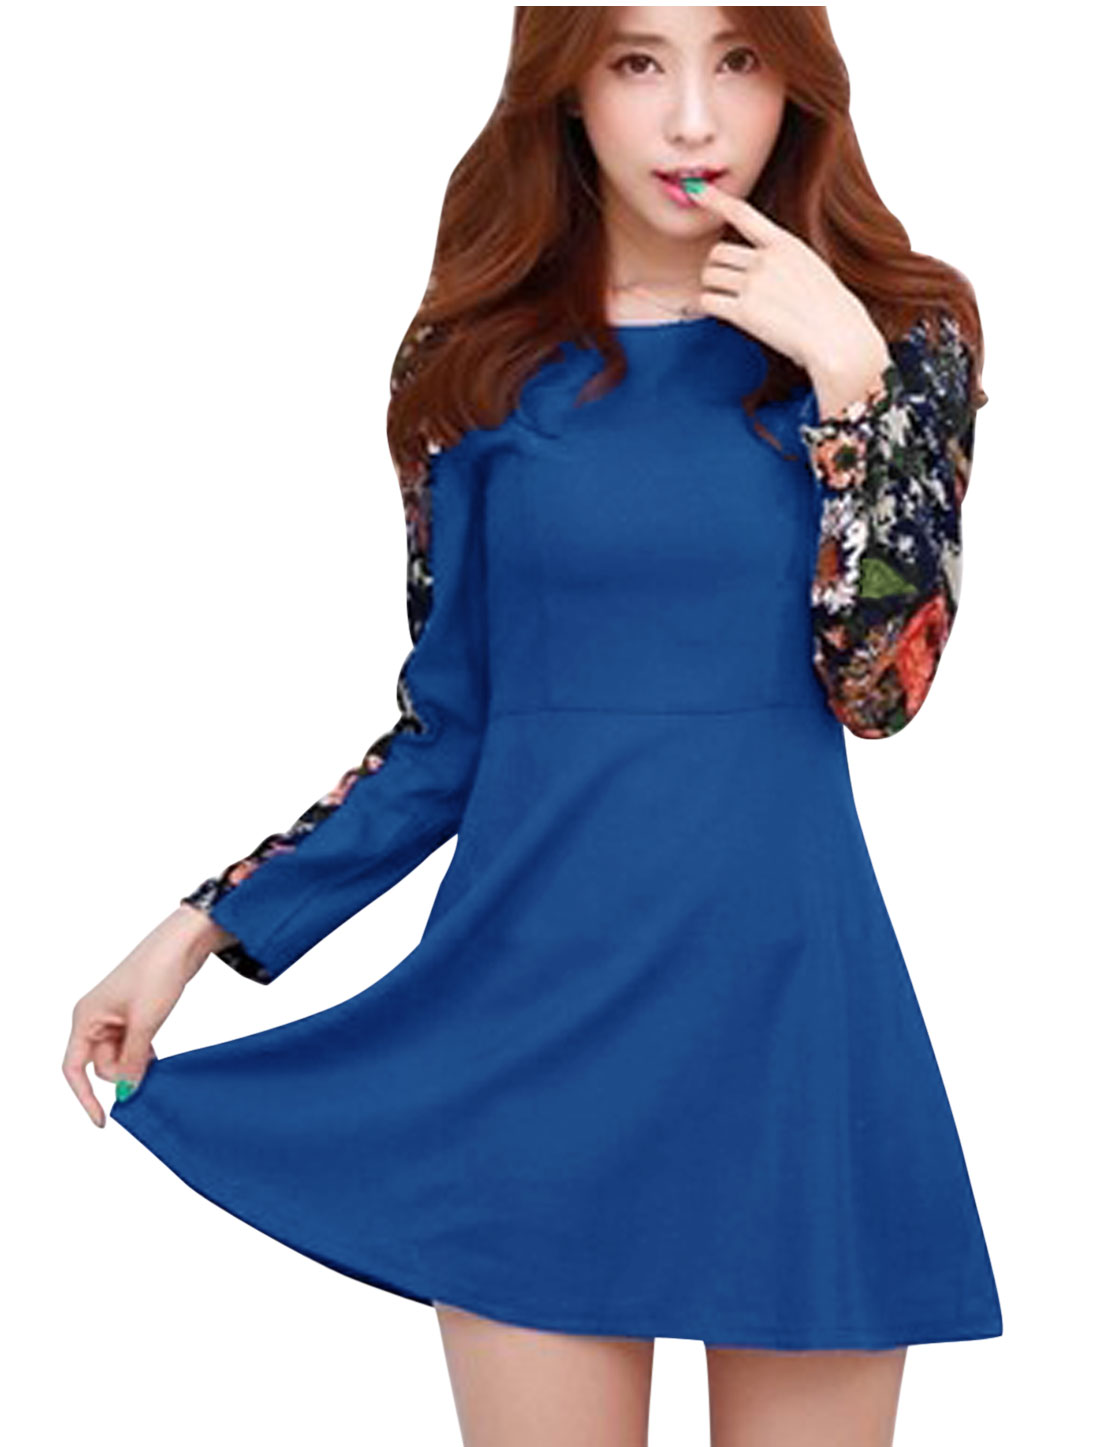 Lady Slipover Splicing Floral Pattern Leisure Short Dress Royal Blue M